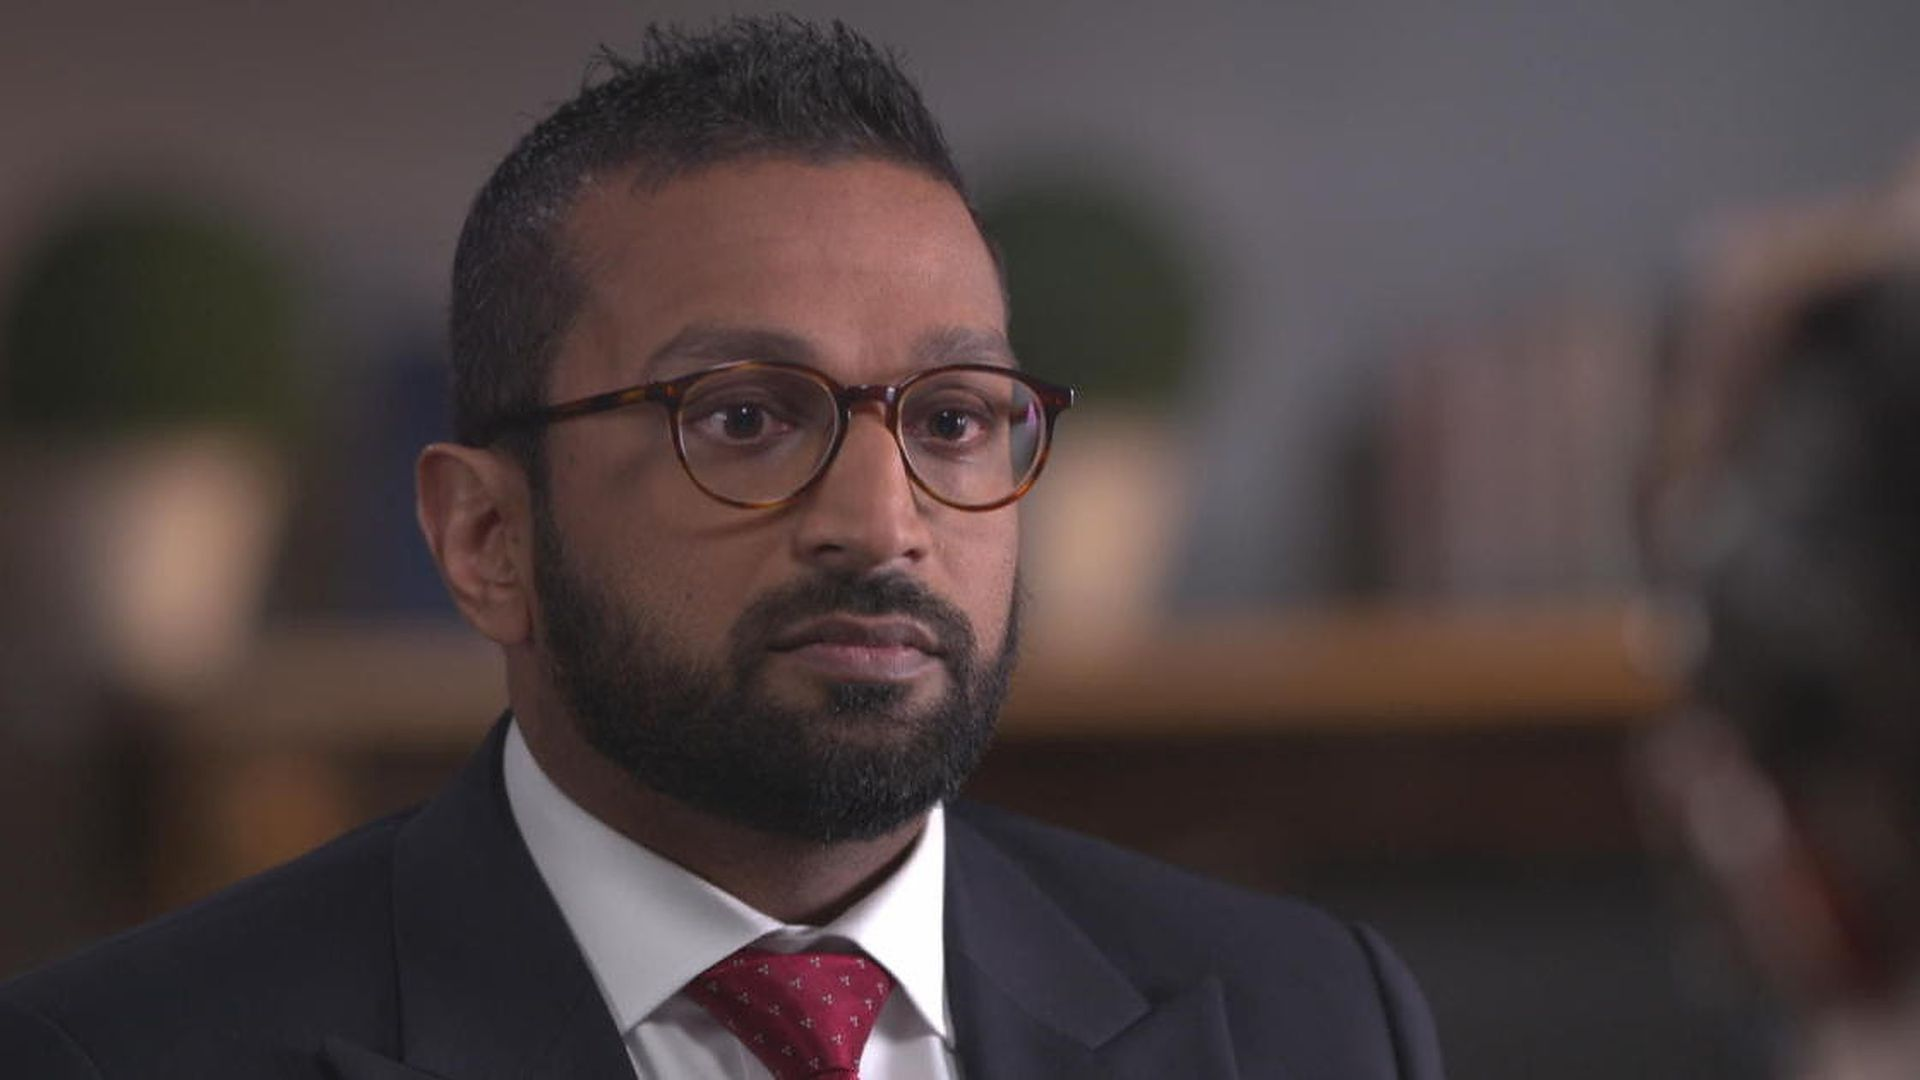 A screengrab of Kash Patel from his CBS interview.